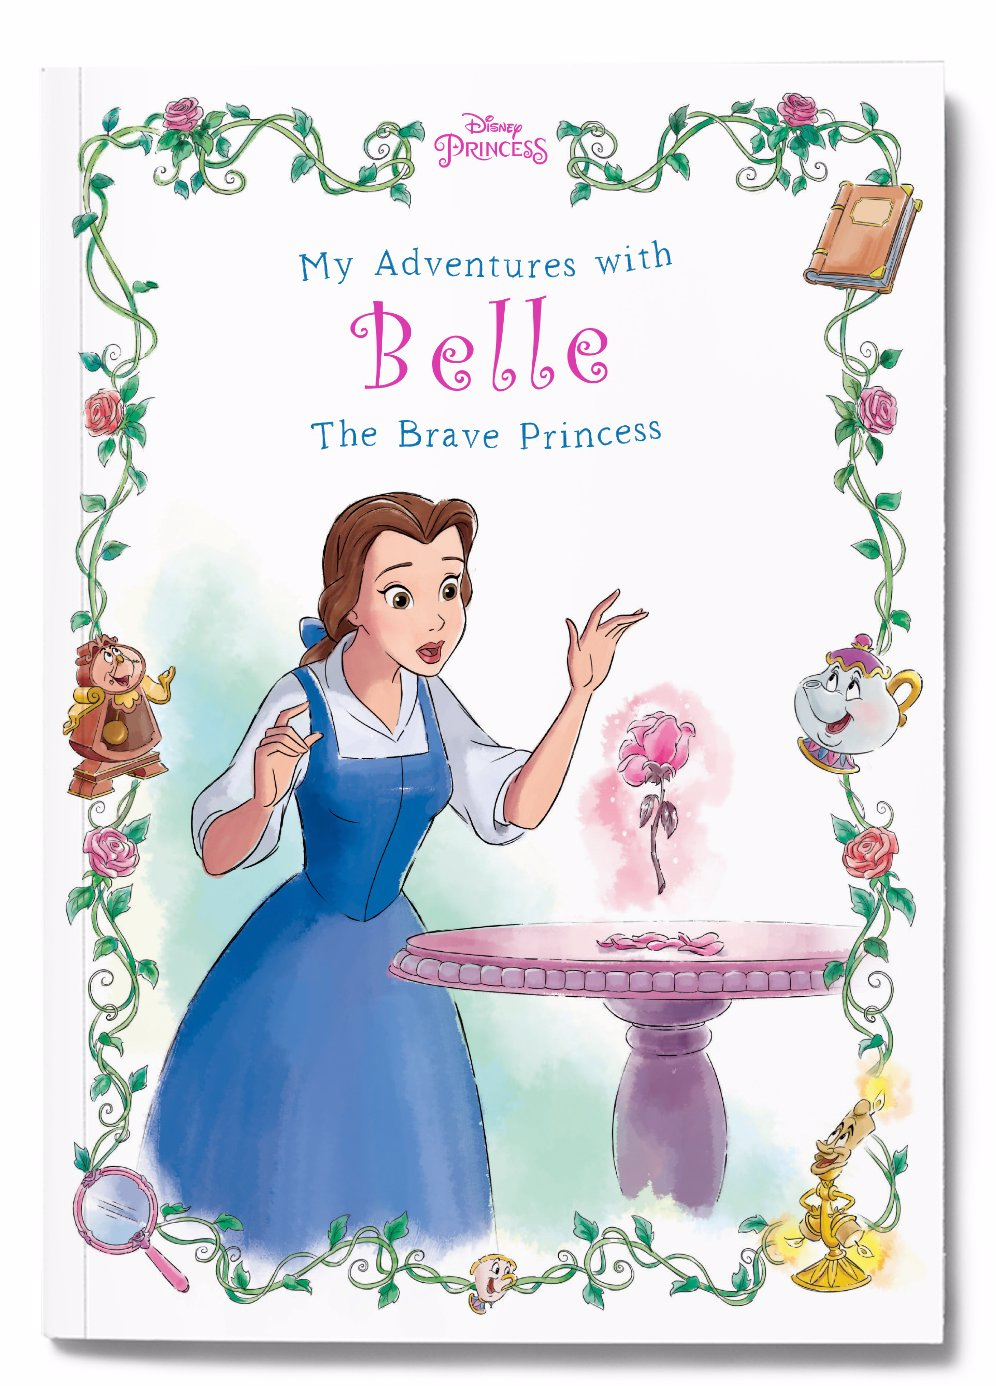 My Adventures with Belle the Brave Princess - Regular Softcover